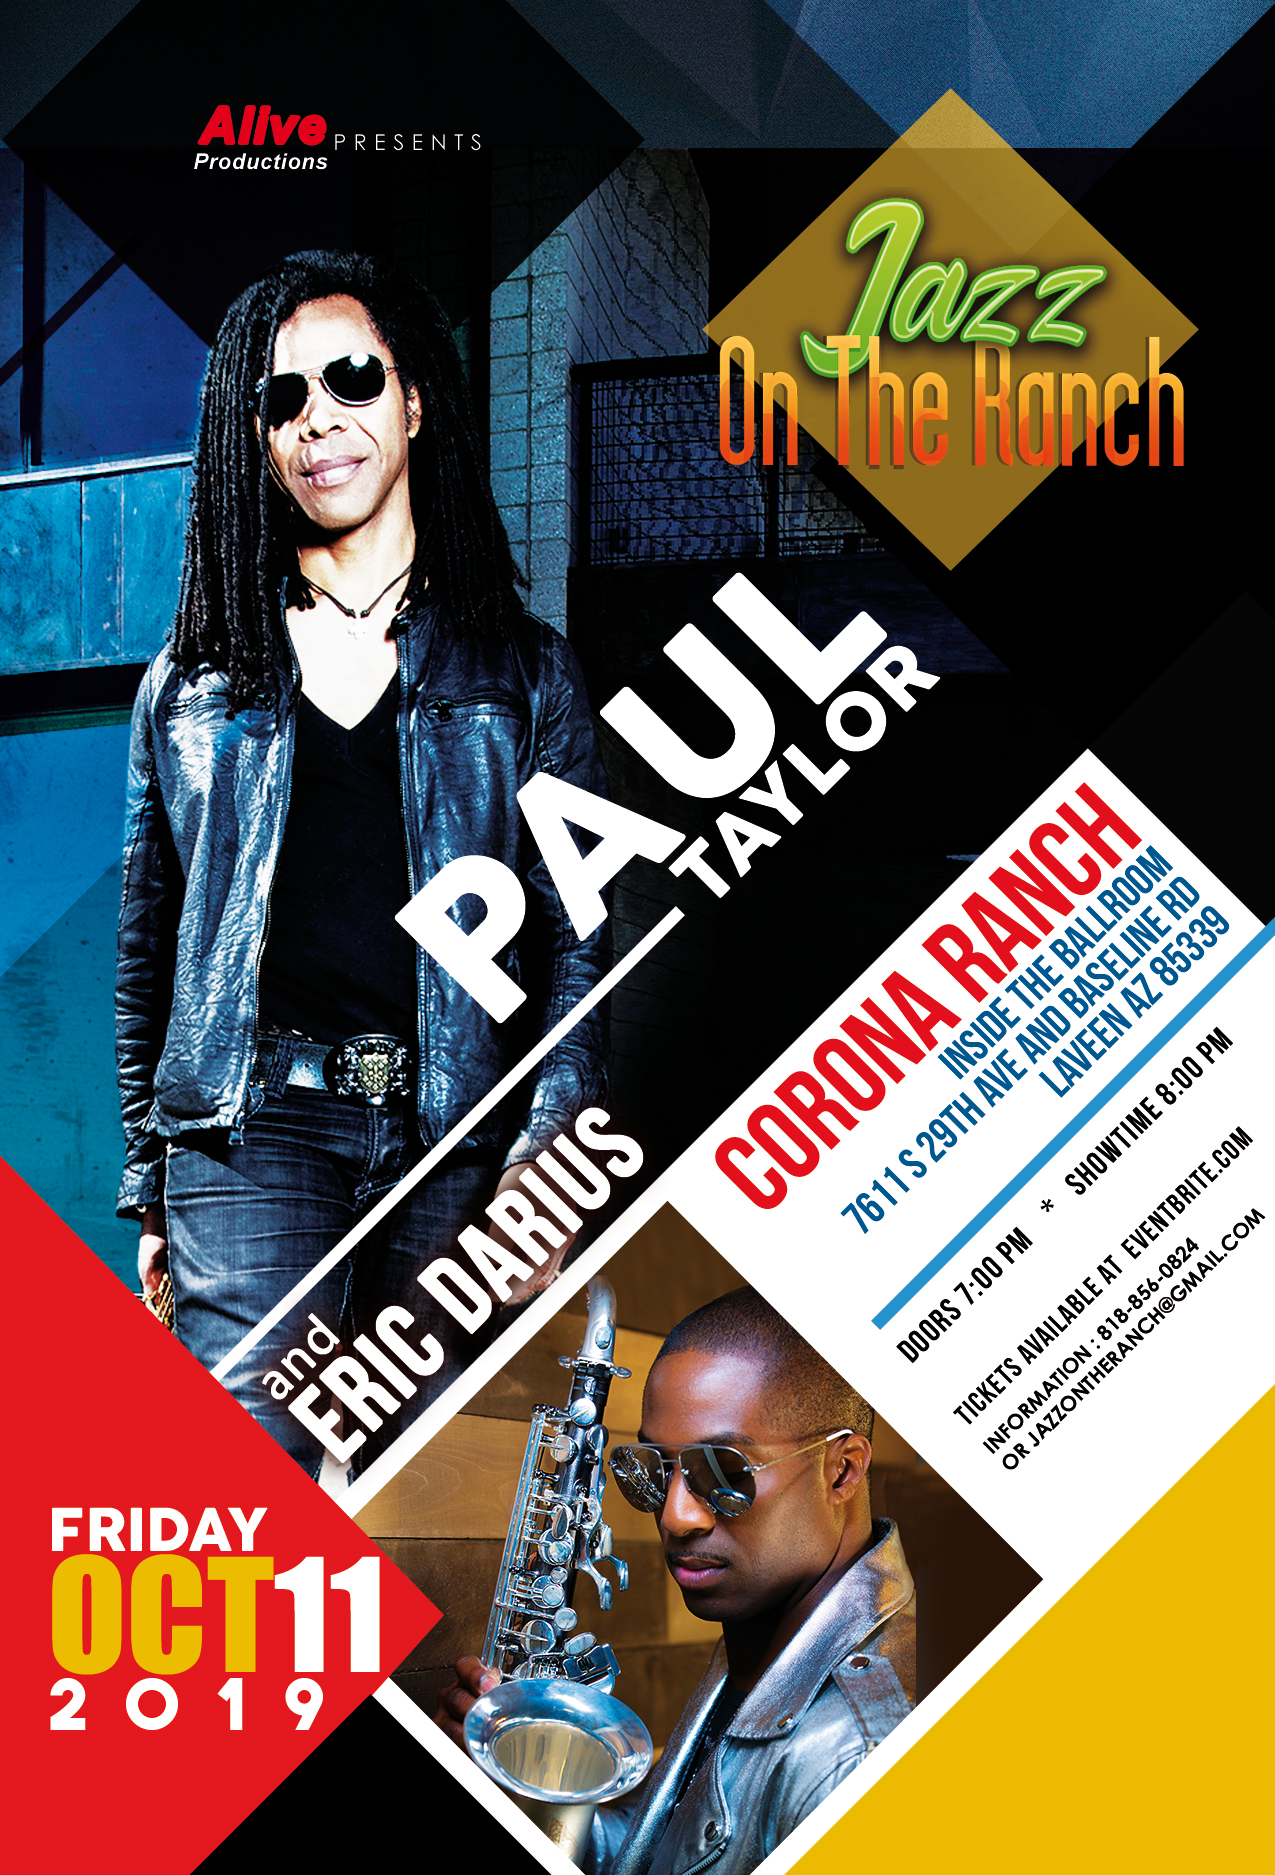 Jazz On The Ranch with Paul Taylor and Eric Darius